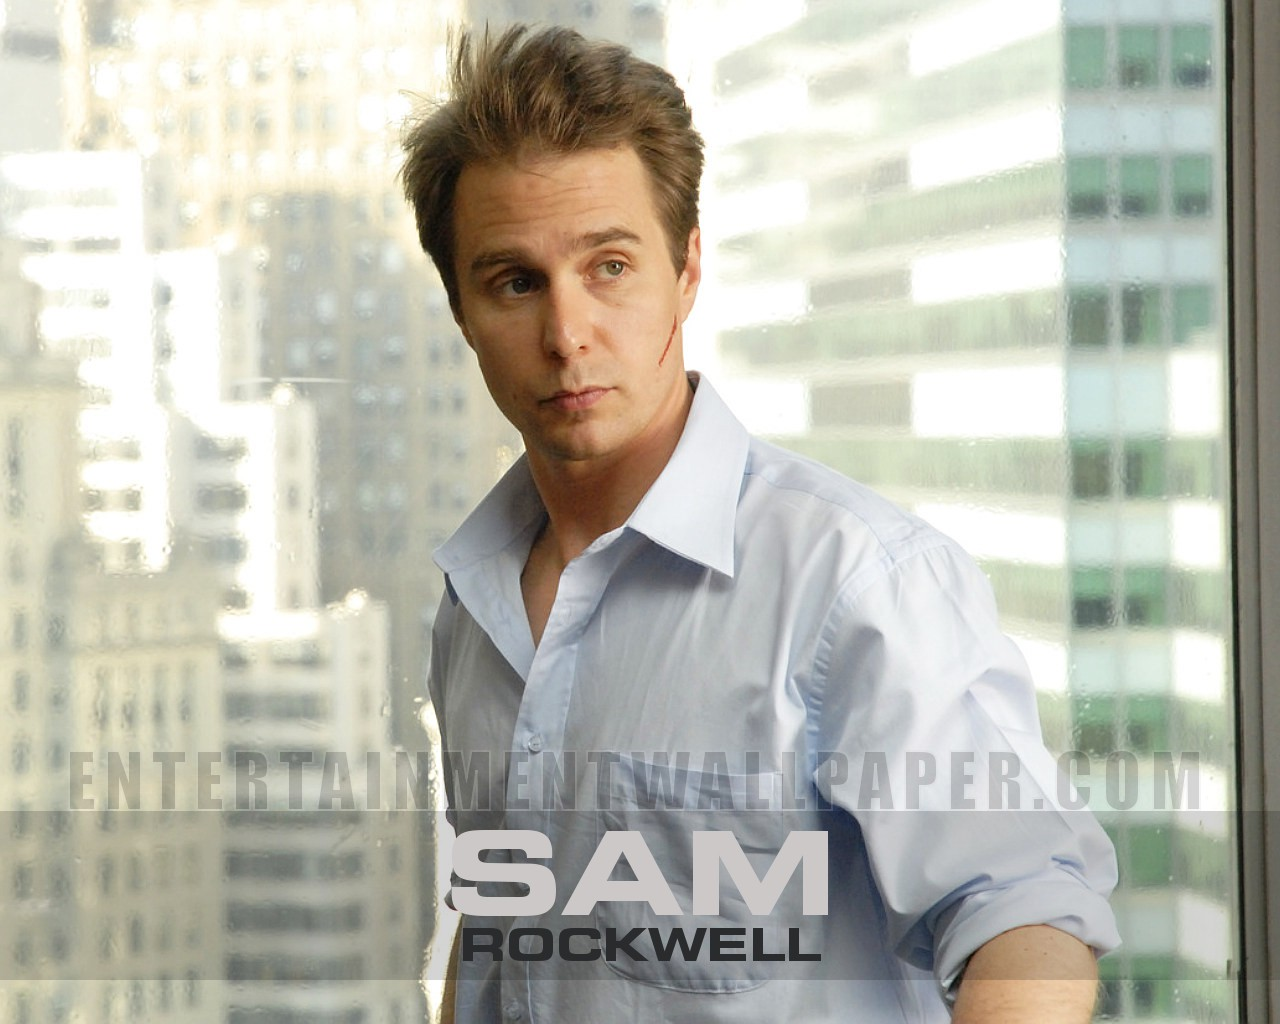 1280x1024 - Sam Rockwell Wallpapers 12